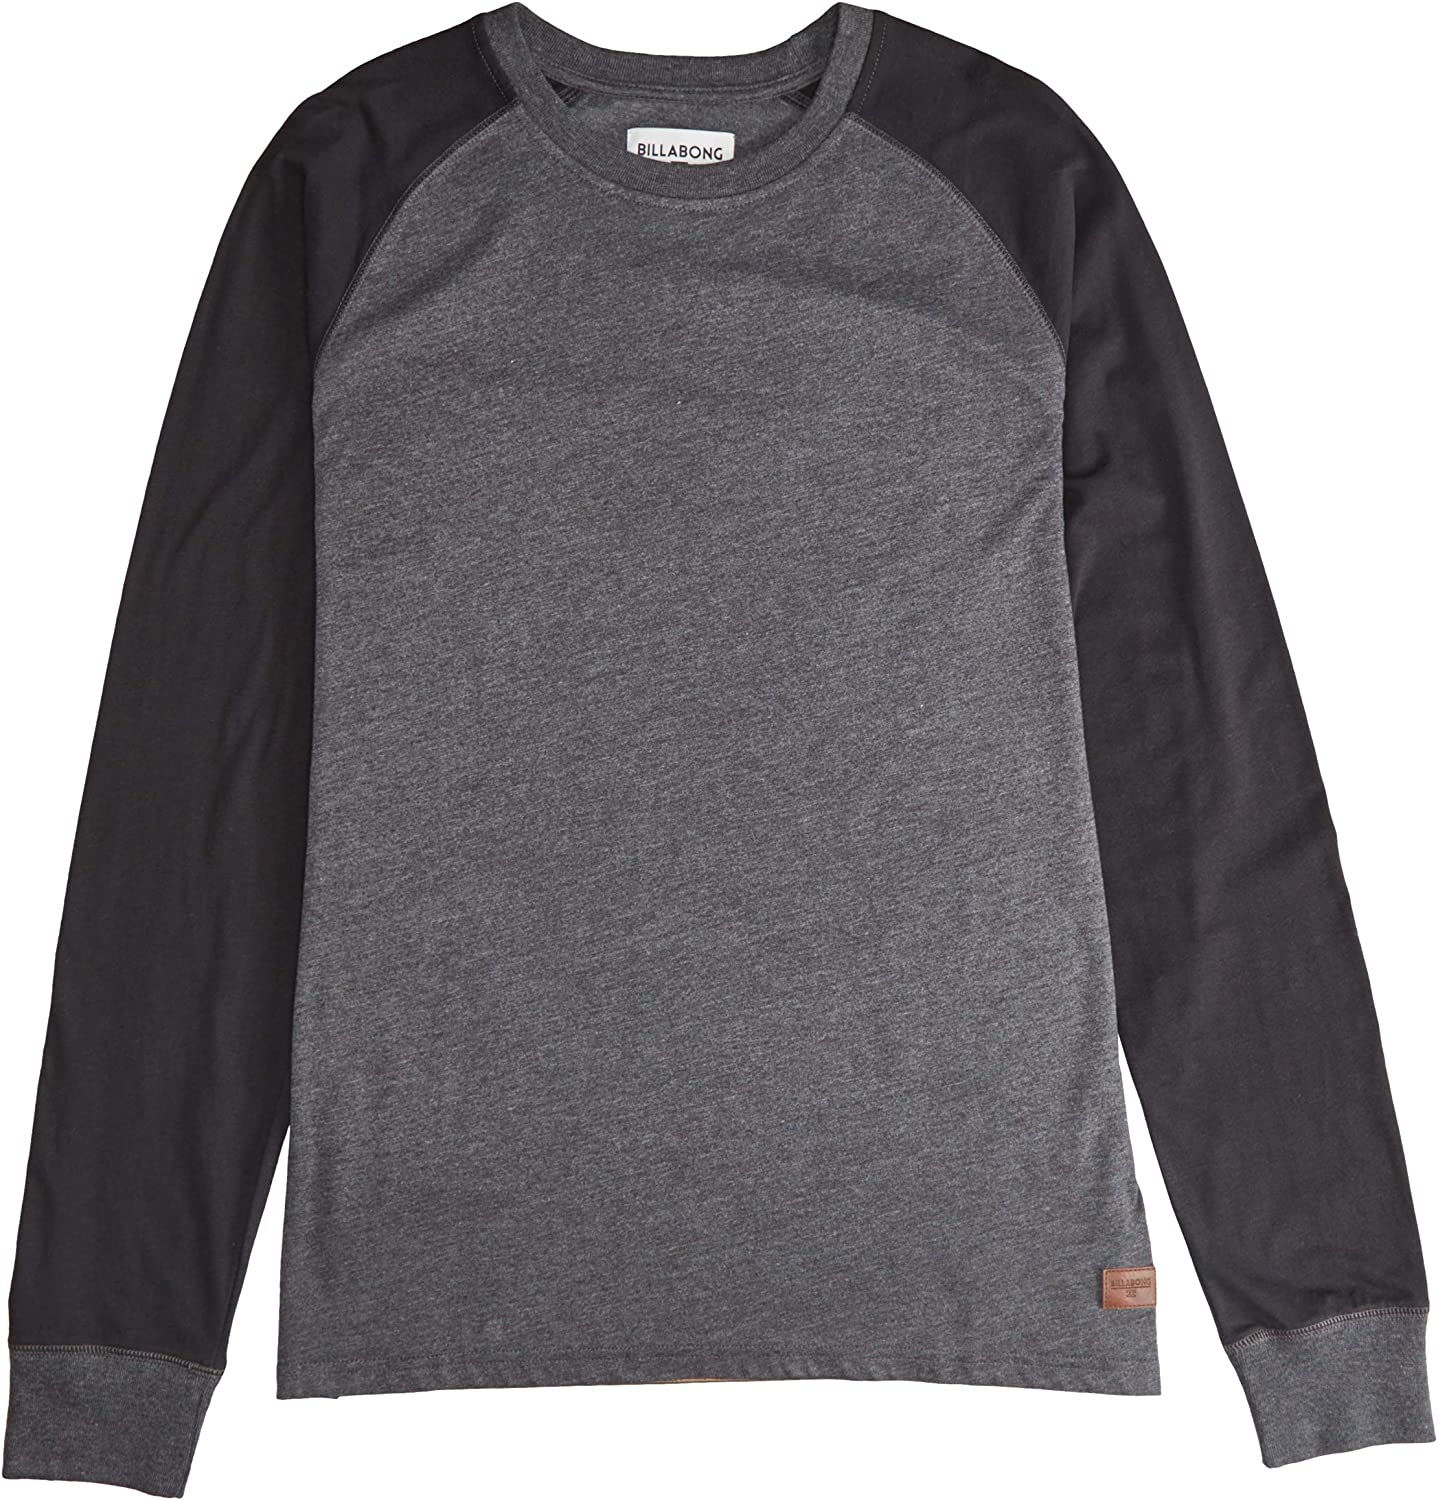 BILLABONG All Day Raglan LS - Camiseta para Hombre: Amazon.es ...